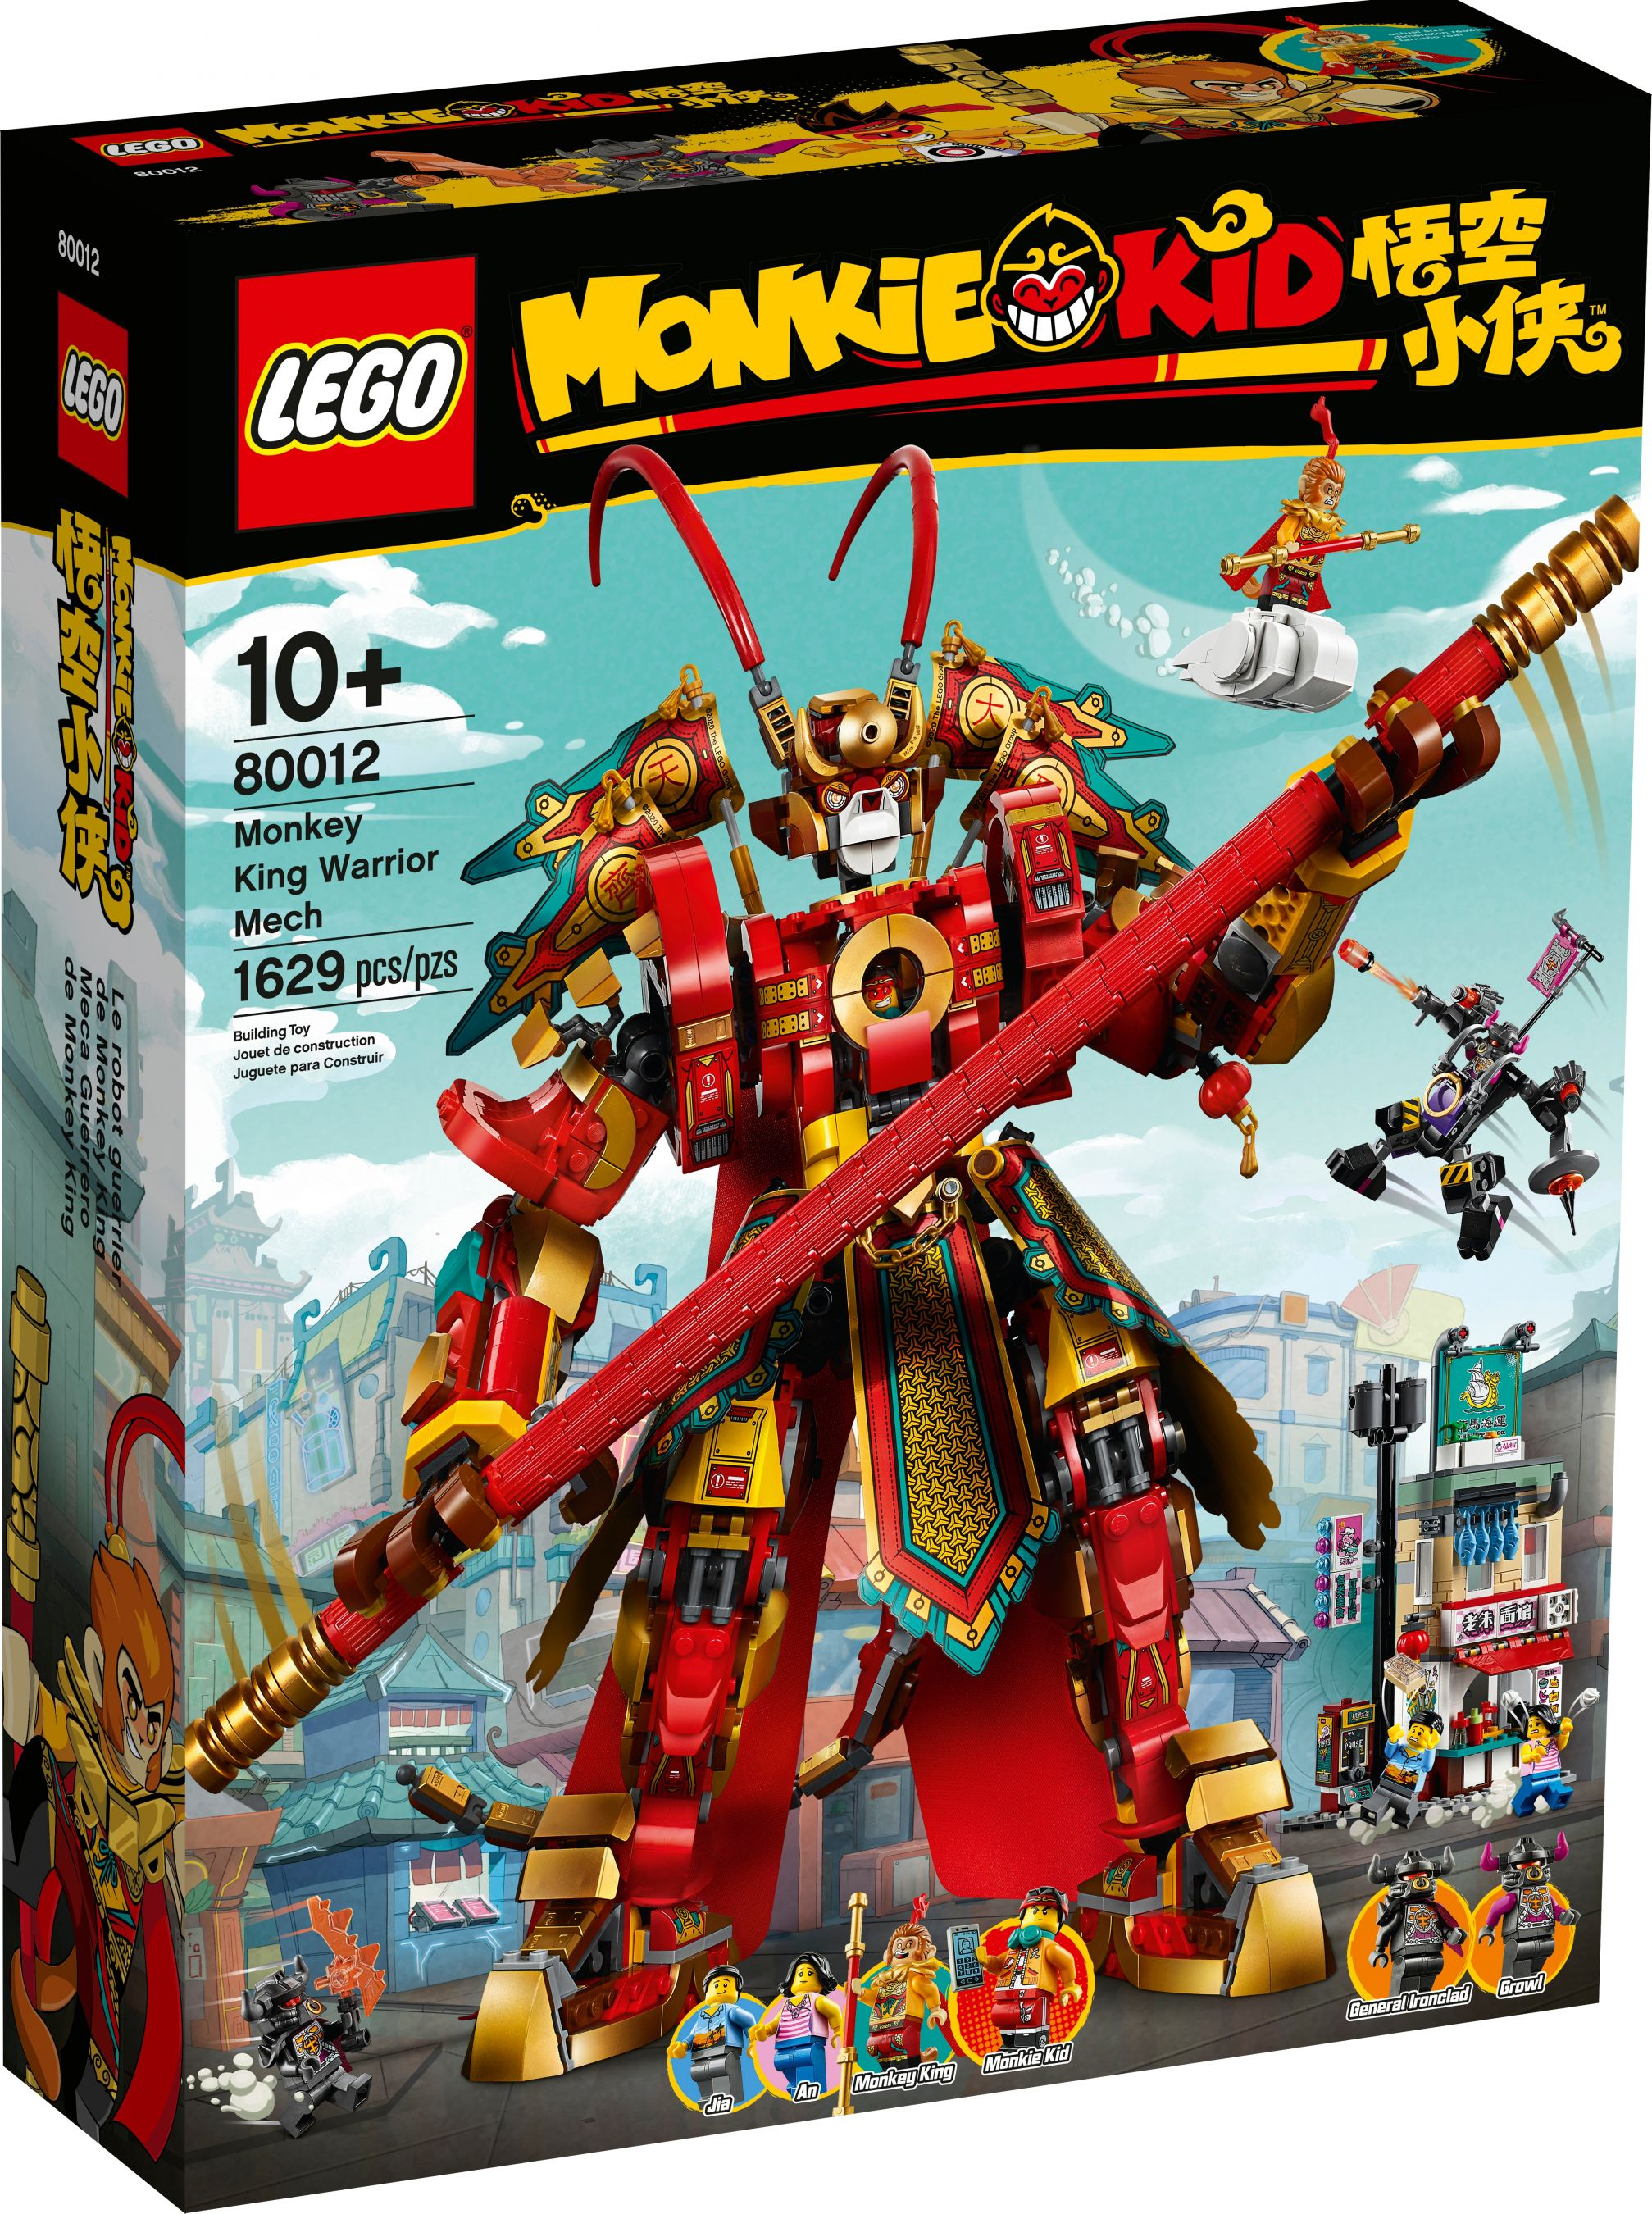 LEGO Monkie Kid 80012 Monkey King Mech LEGO_80012_alt1.jpg